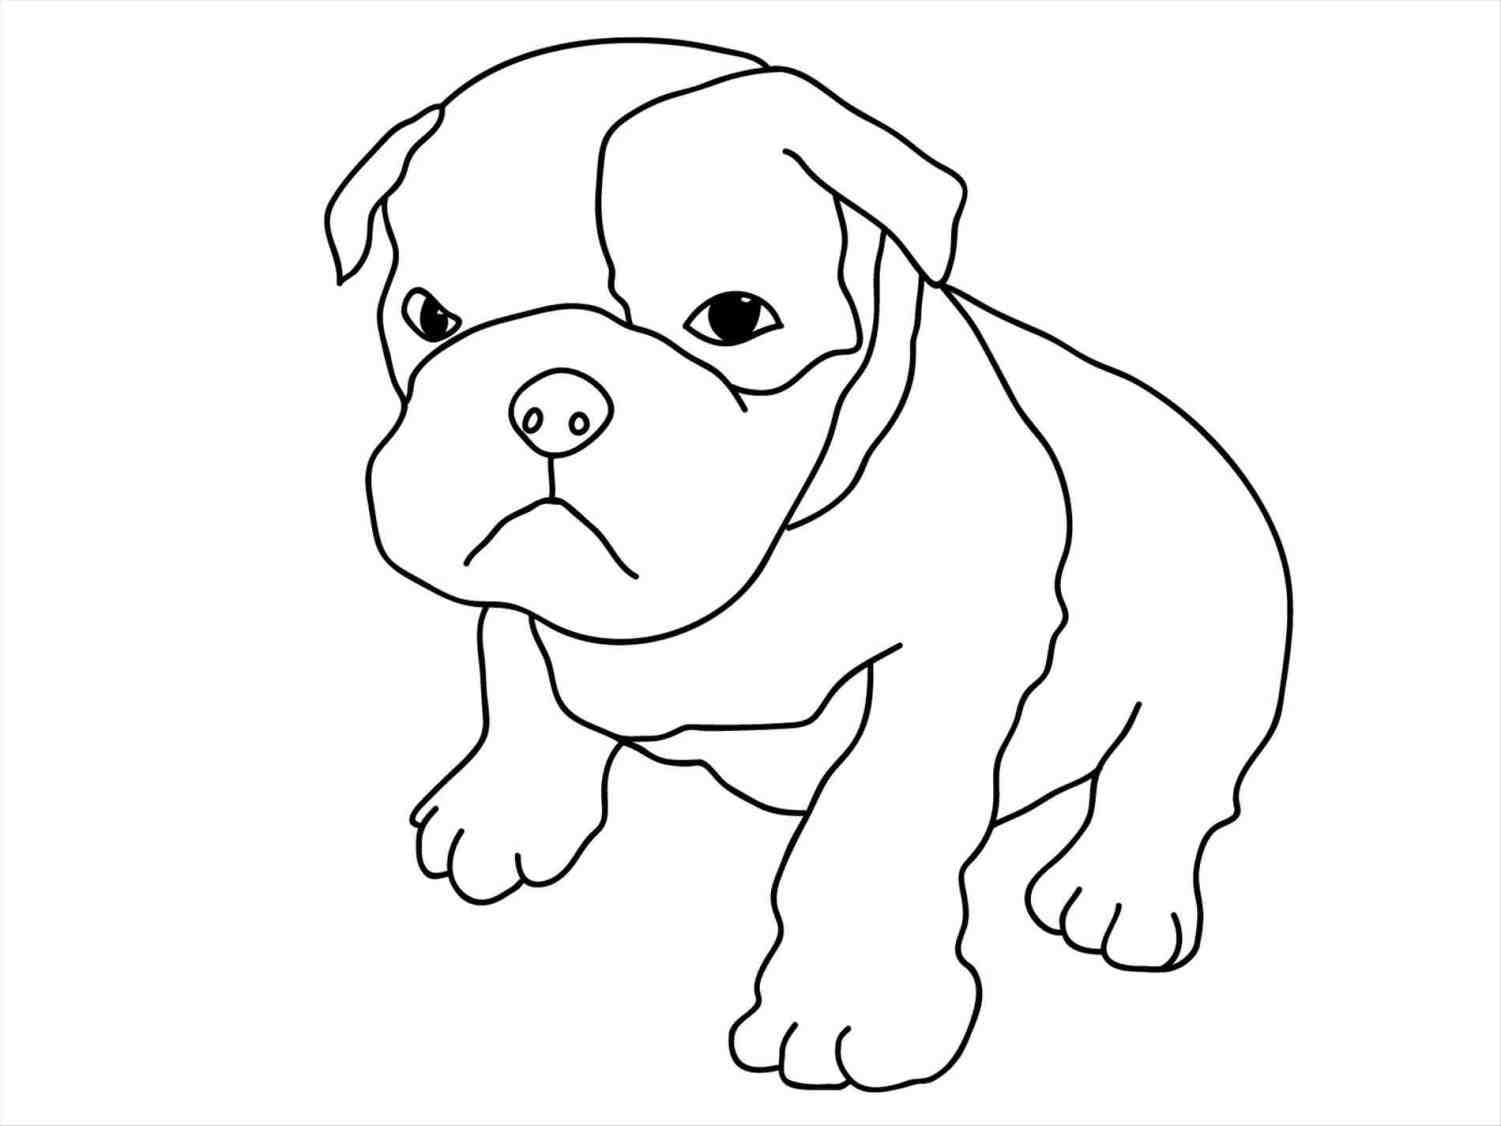 1501x1126 The Images Collection Of Planet Coloring Pages Printable Free